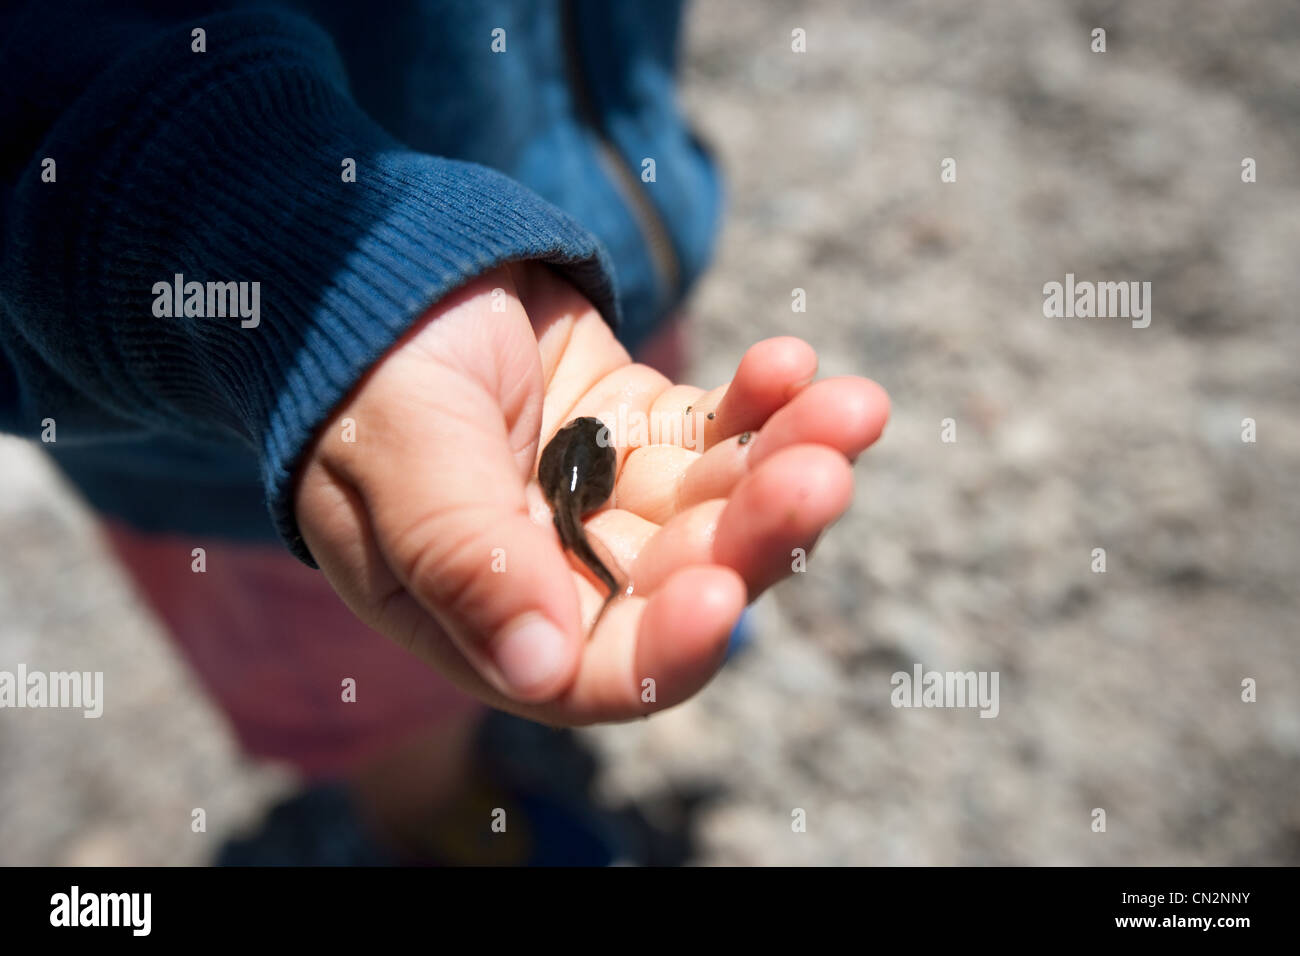 Toddler boy holding tadpole in palm of hand - Stock Image